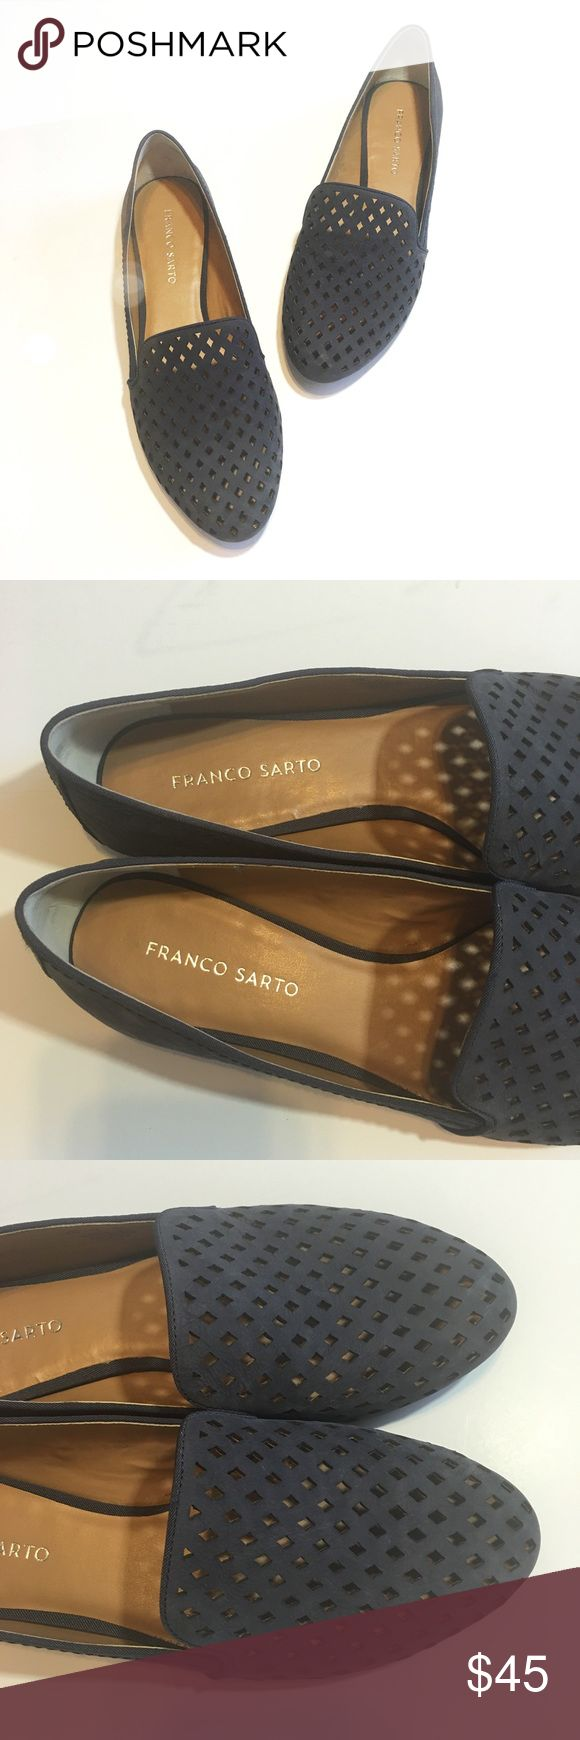 New Franco Sarto Navy Laser Cut Loafers So cute and perfect for a casual weekend! Brand new and never worn. Size 9.5. Navy leather with laser cut details. No trades!! 01311780gwf Franco Sarto Shoes Flats & Loafers